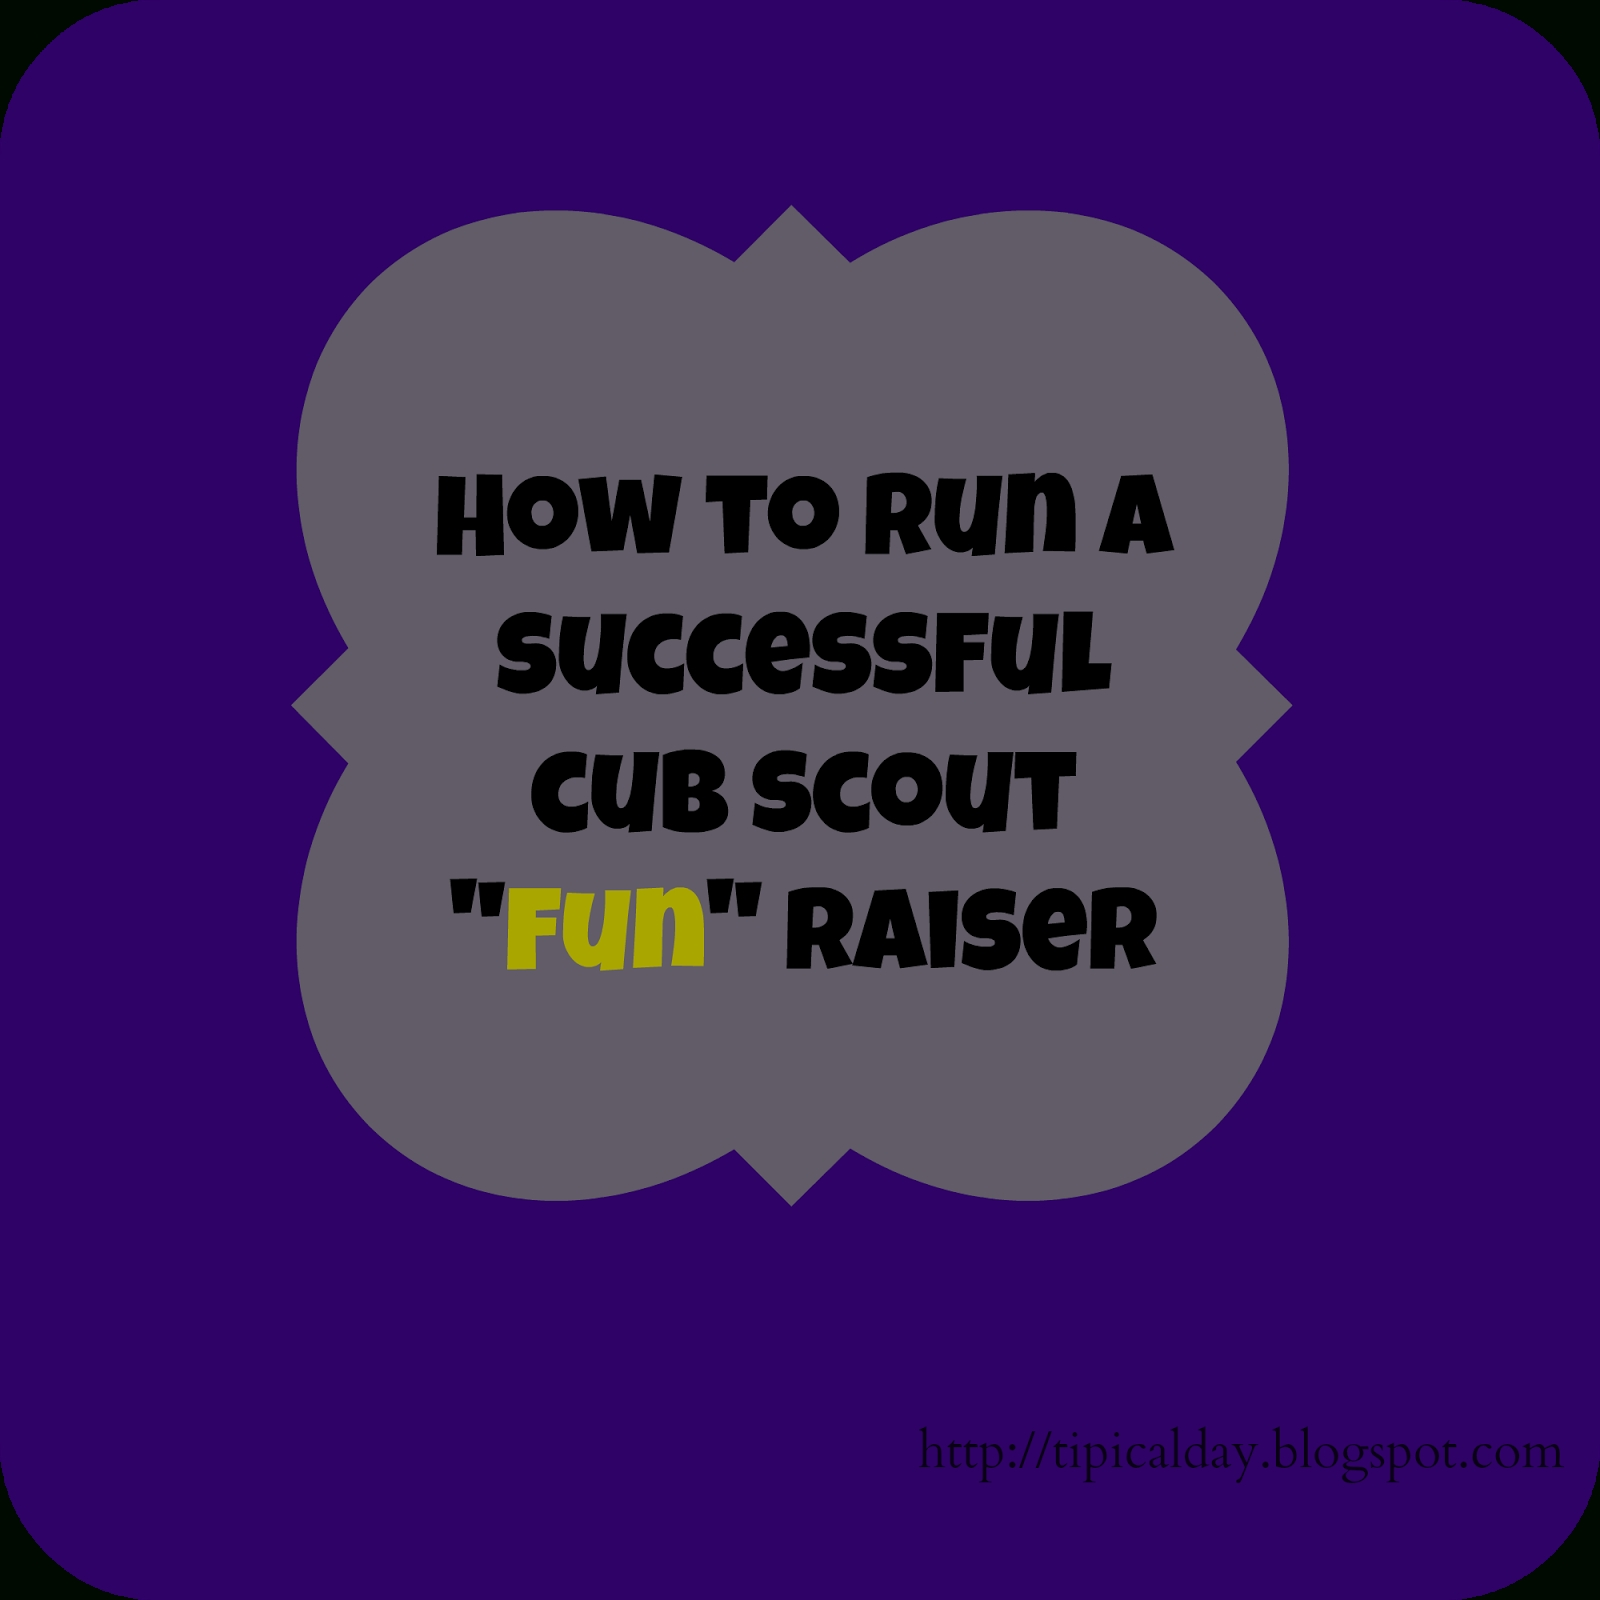 10 Stylish Fundraising Ideas For Boy Scouts how to run a successful cub scout fundraiser part 1 fundraising